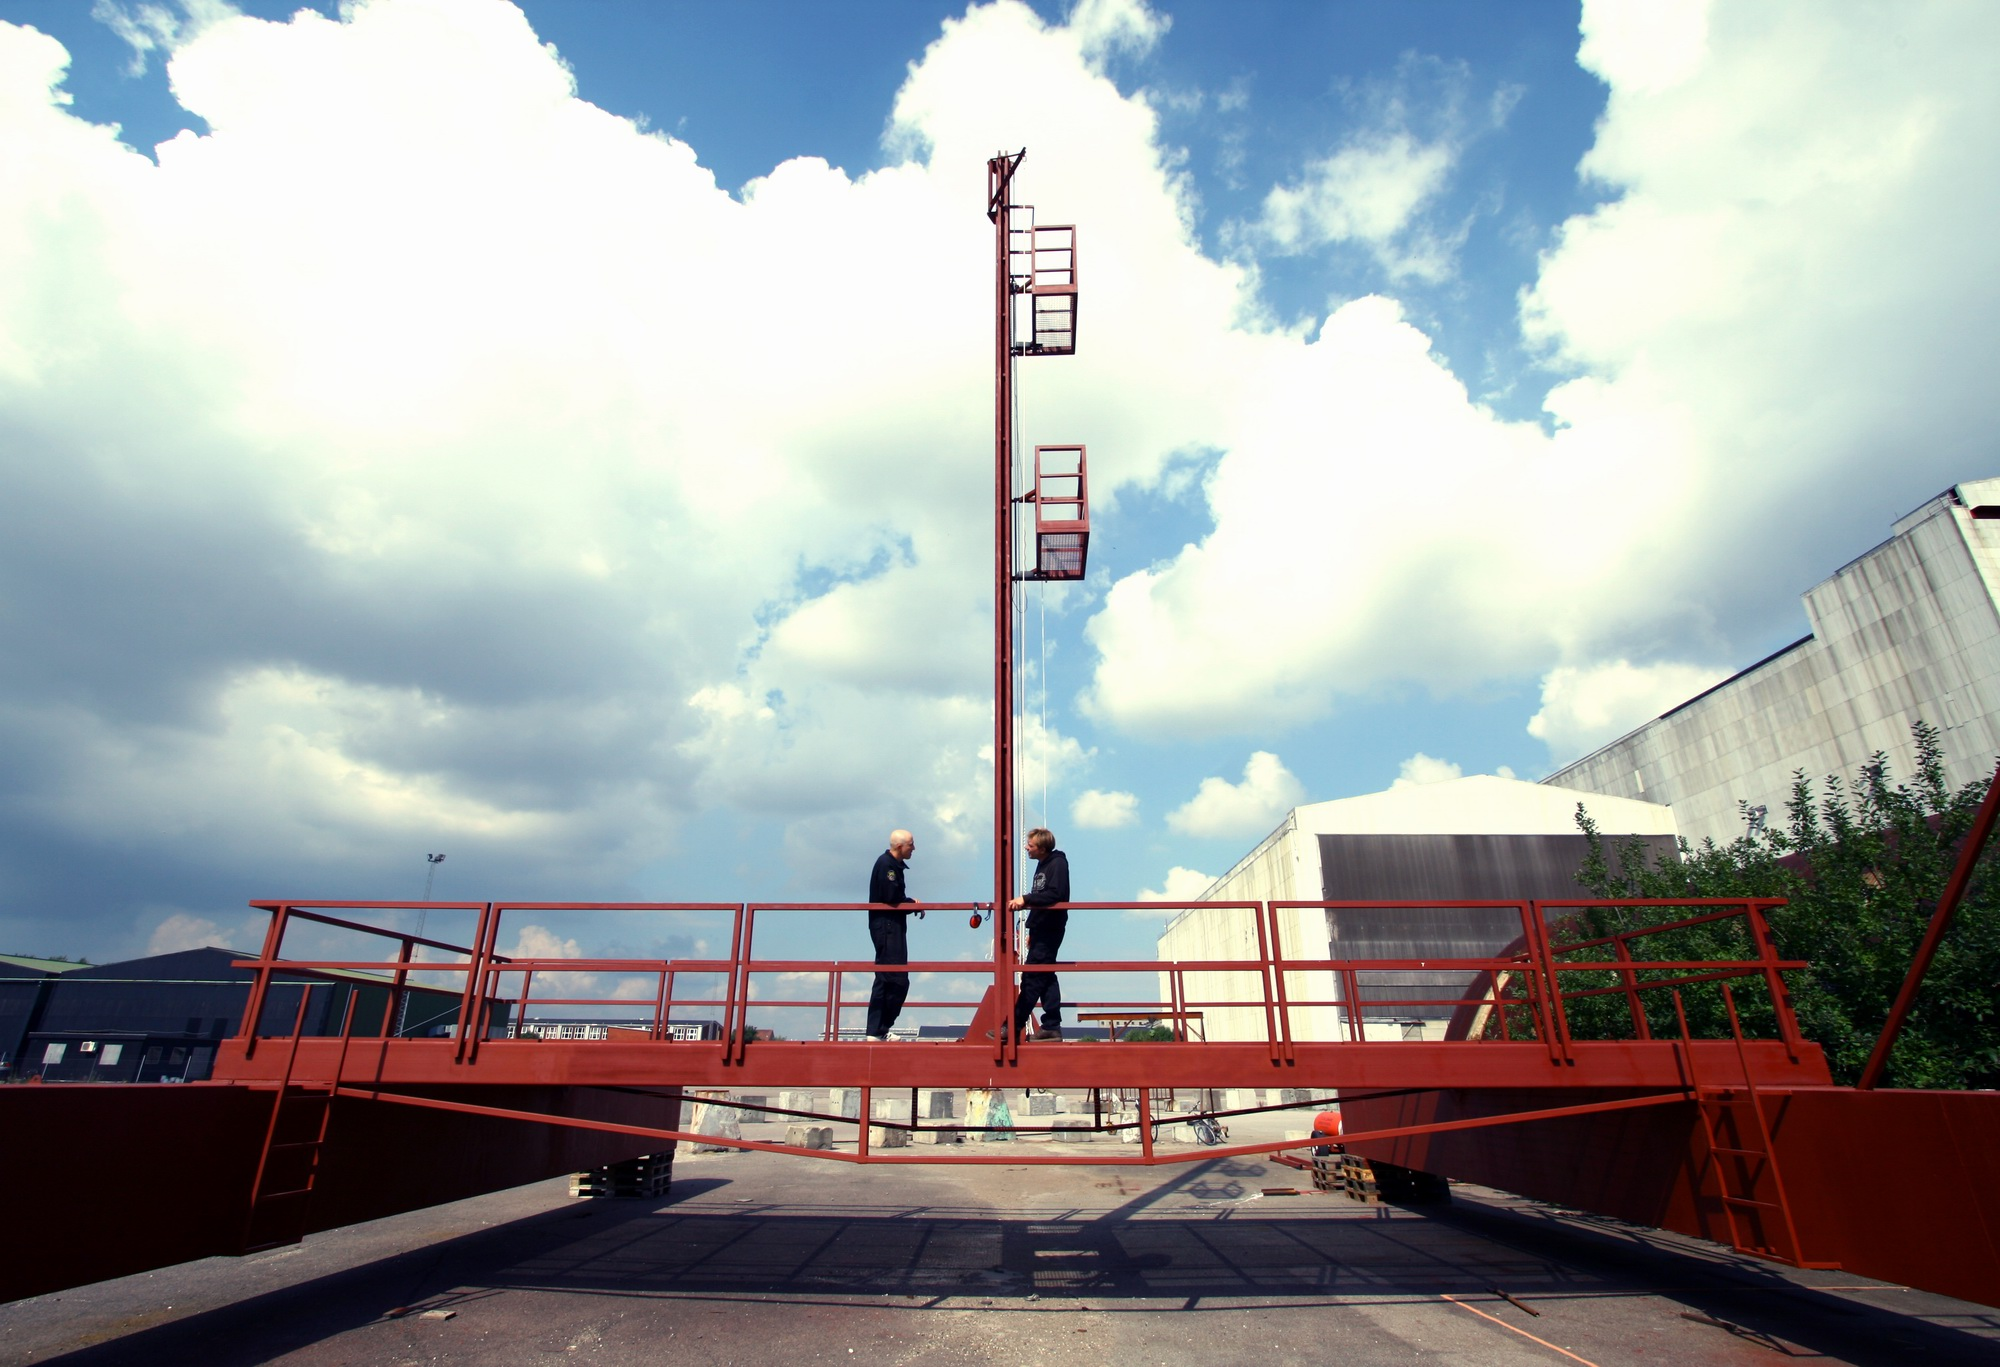 Founders of the project Kristian von Bengtson and Peter Madsen on the Mobile Launch Platform with Eurovision venue on the background. Photo:Erik Sellgren